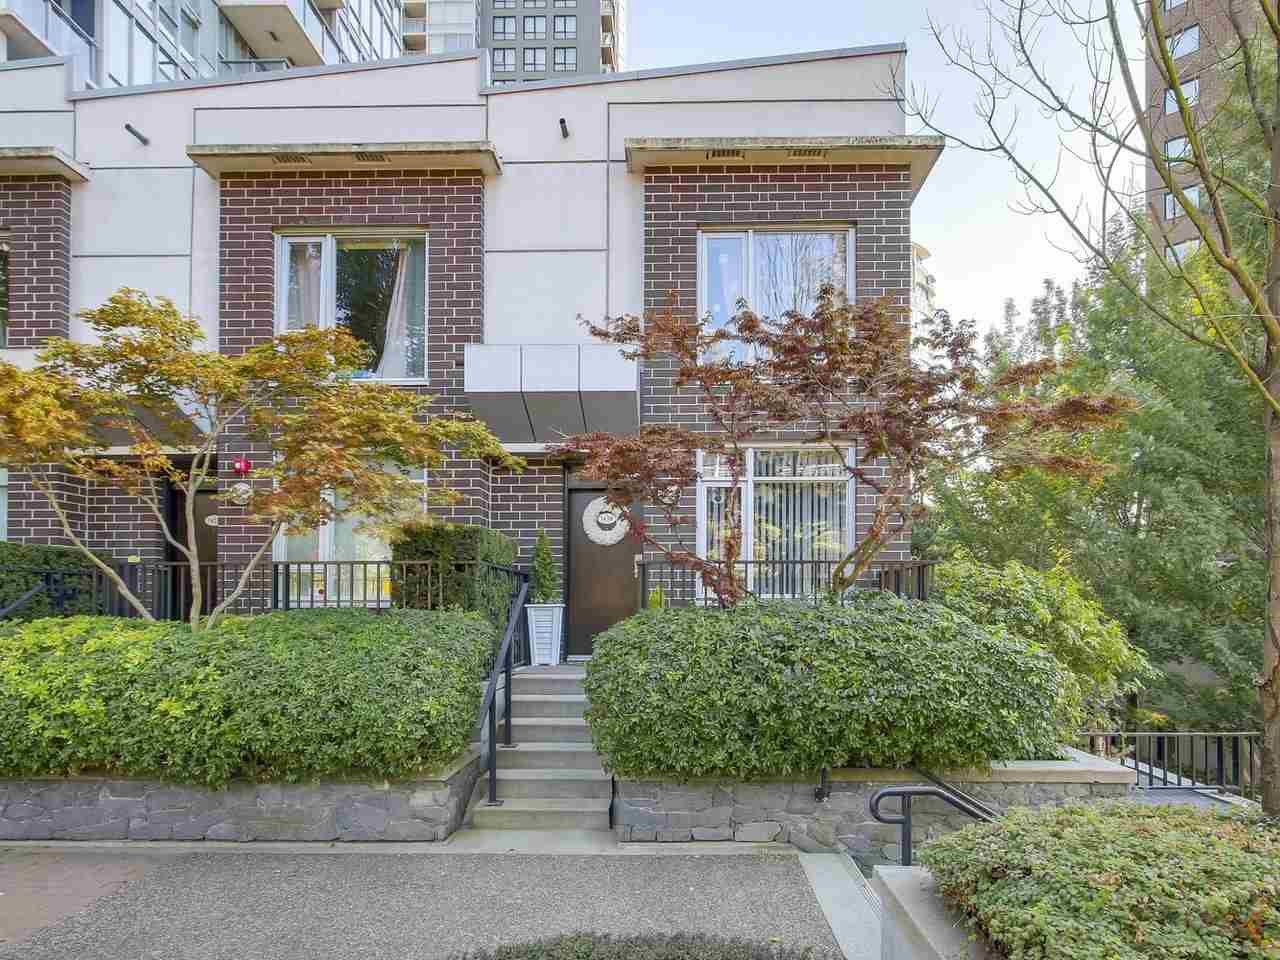 Main Photo: 1438 SEYMOUR MEWS in Vancouver: Yaletown Townhouse for sale (Vancouver West)  : MLS®# R2201290